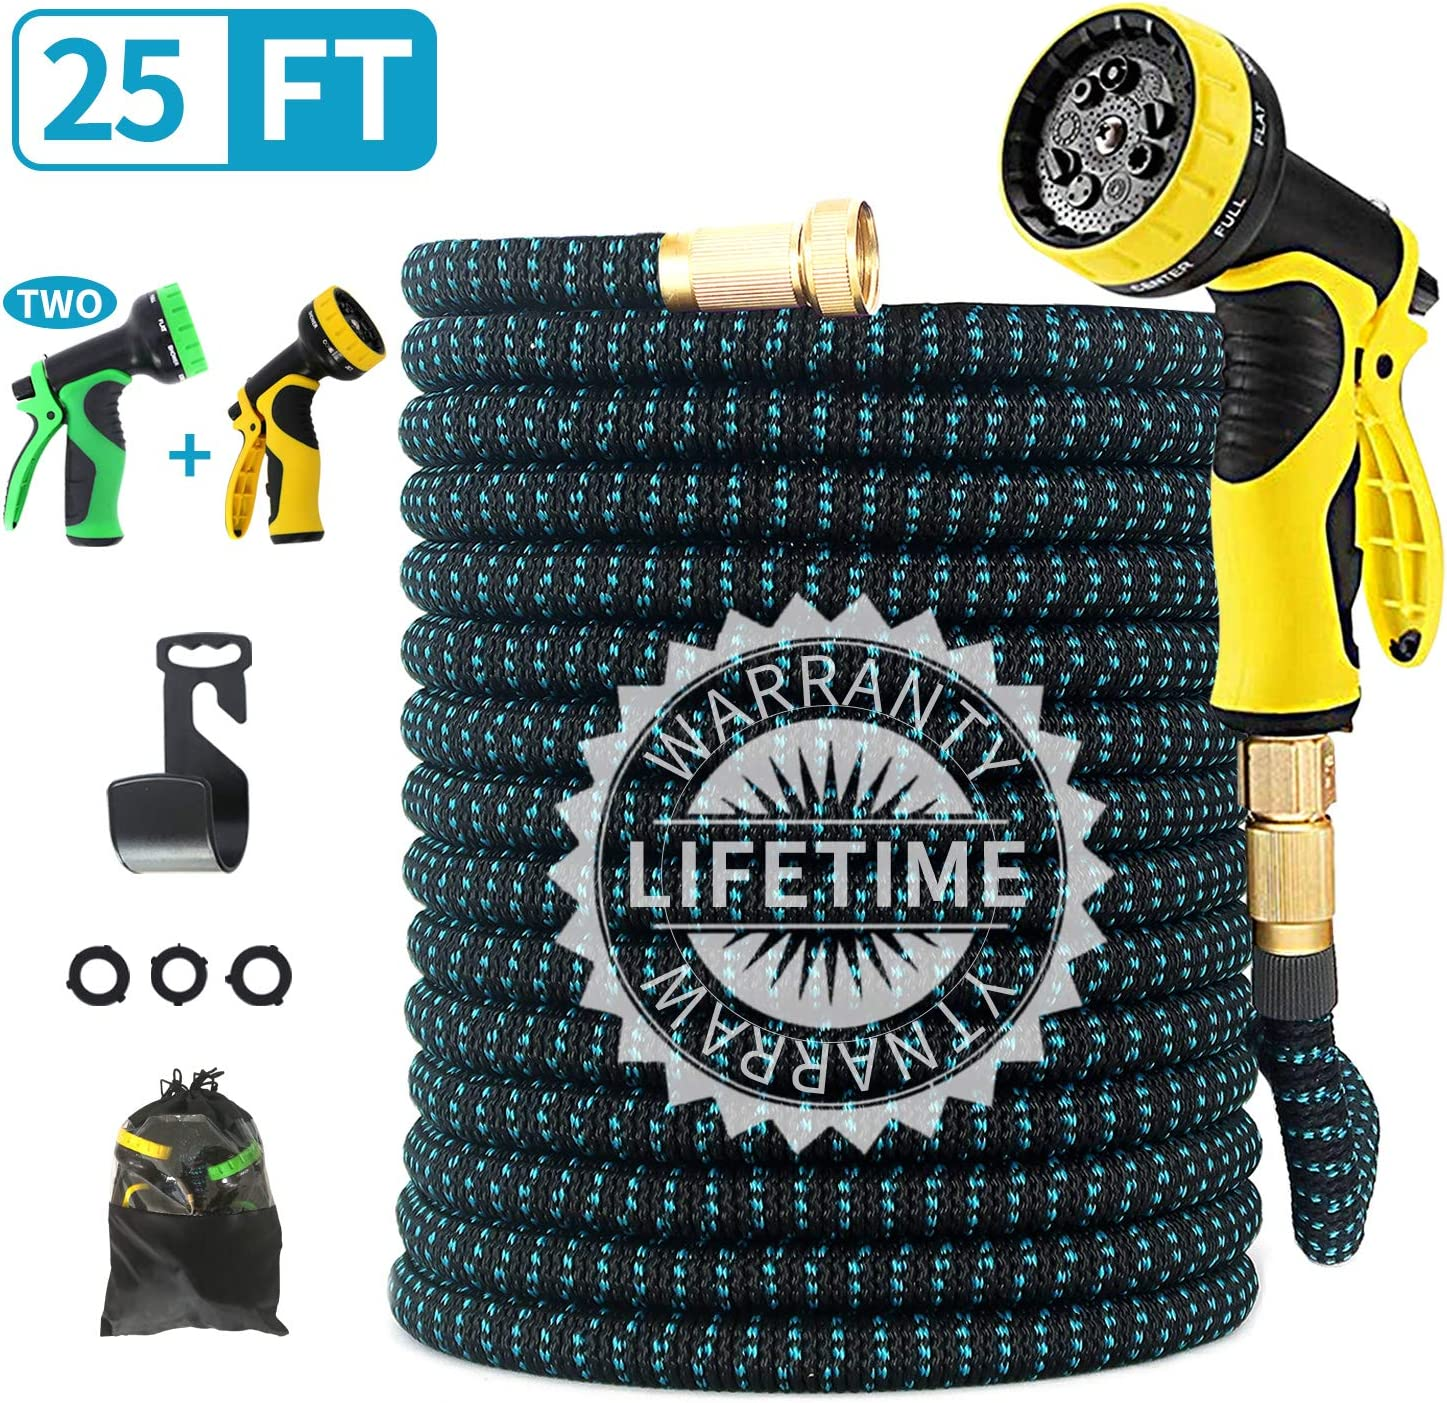 "FIENVO 25 ft Upgraded Expandable Durable No-Kink Flexible Garden Water Hose Set with Extra Strength Fabric Triple Layer Latex Core,3/4"" Solid Brass Connectors 9 Function Spray Hose Nozzle"